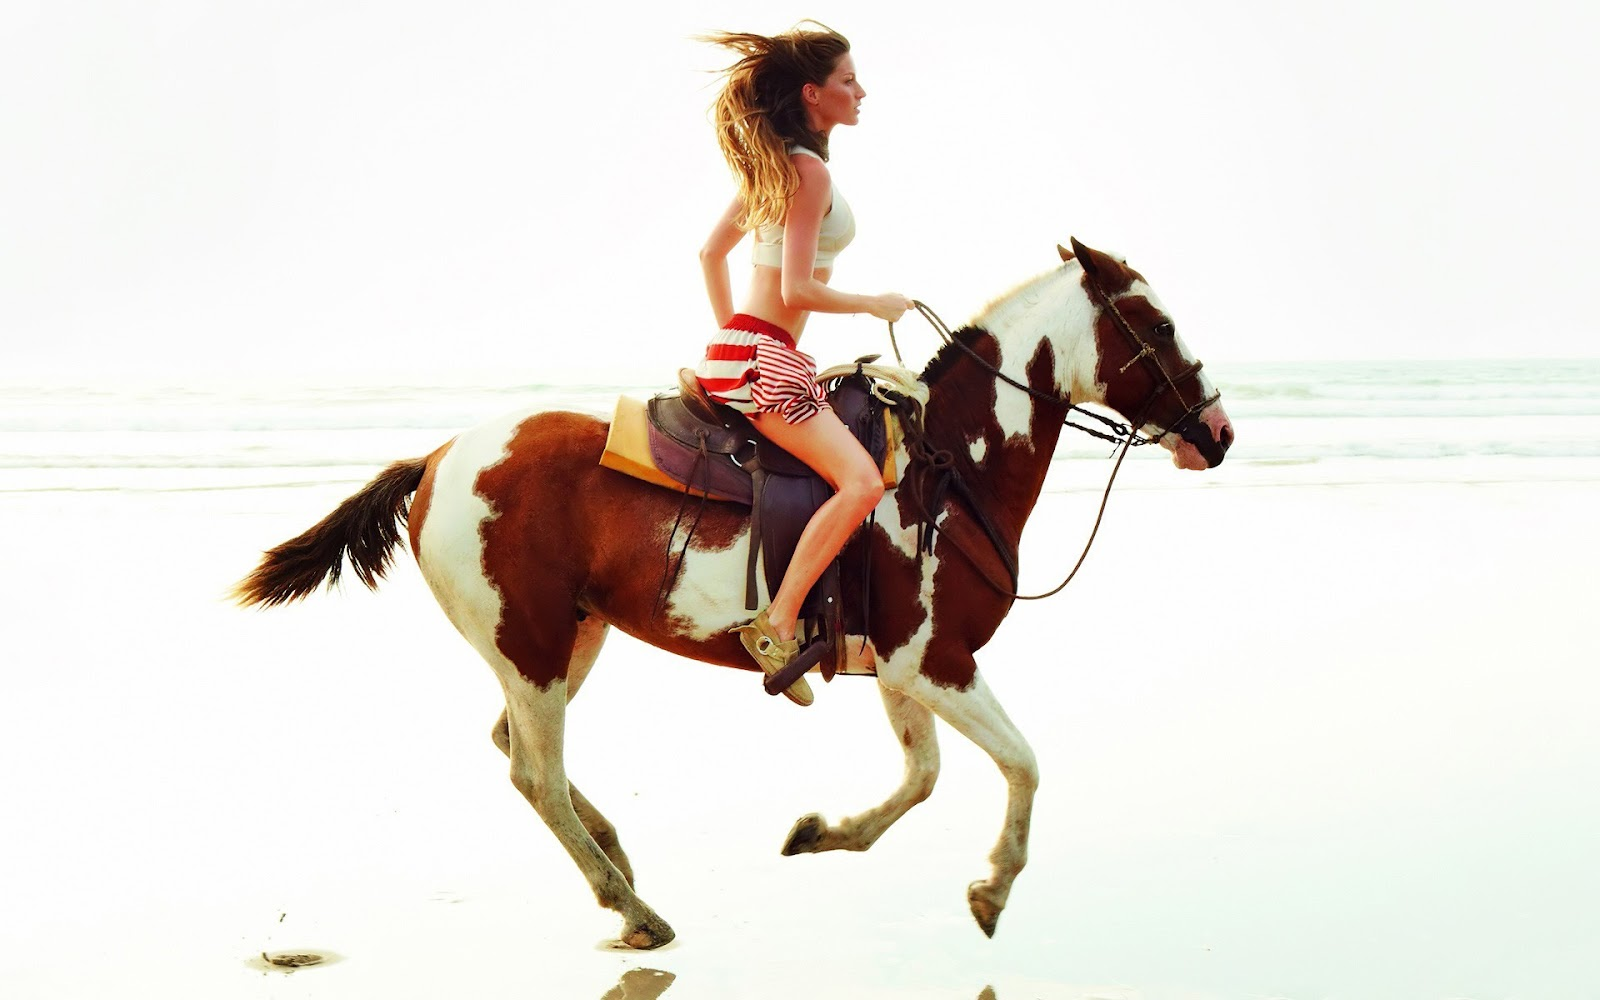 Fantastic Wallpaper Horse Beach - hd-horses-wallpapers-with-a-girl-on-a-brown-horse-riding-horse-on-the-beach-backgrounds  Trends_732110.jpg